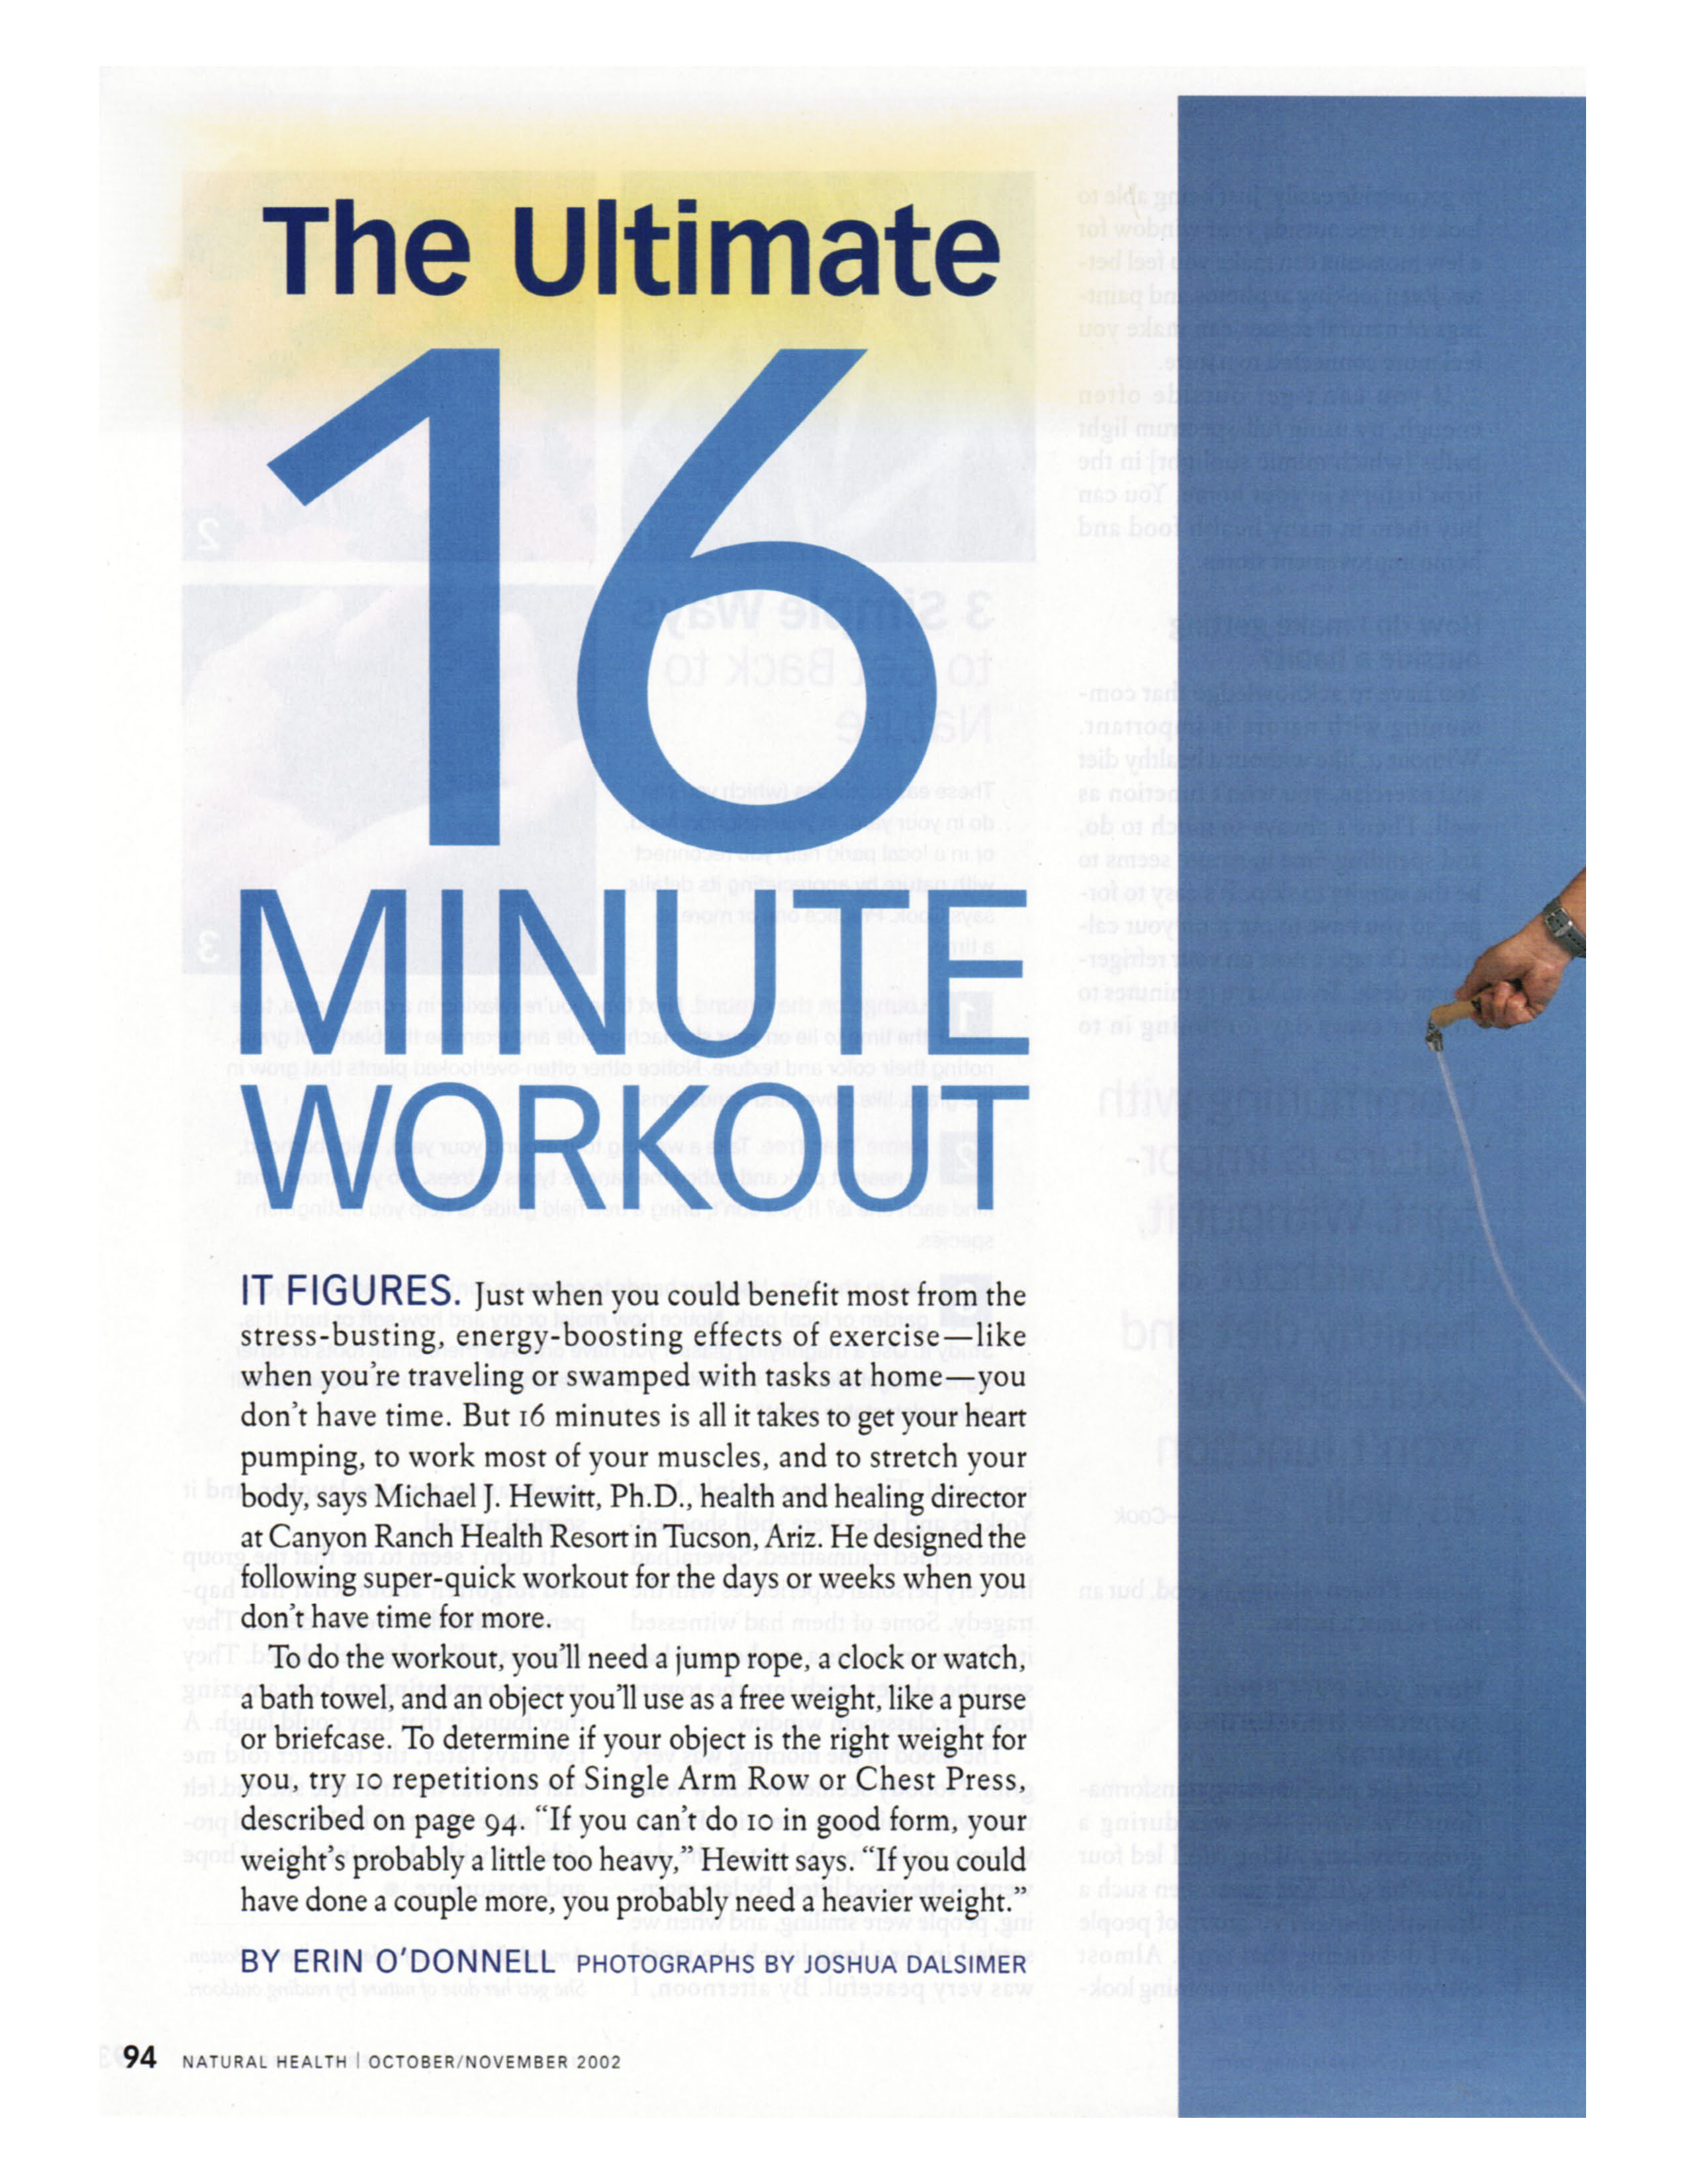 The Ultimate 16 Minute Workout